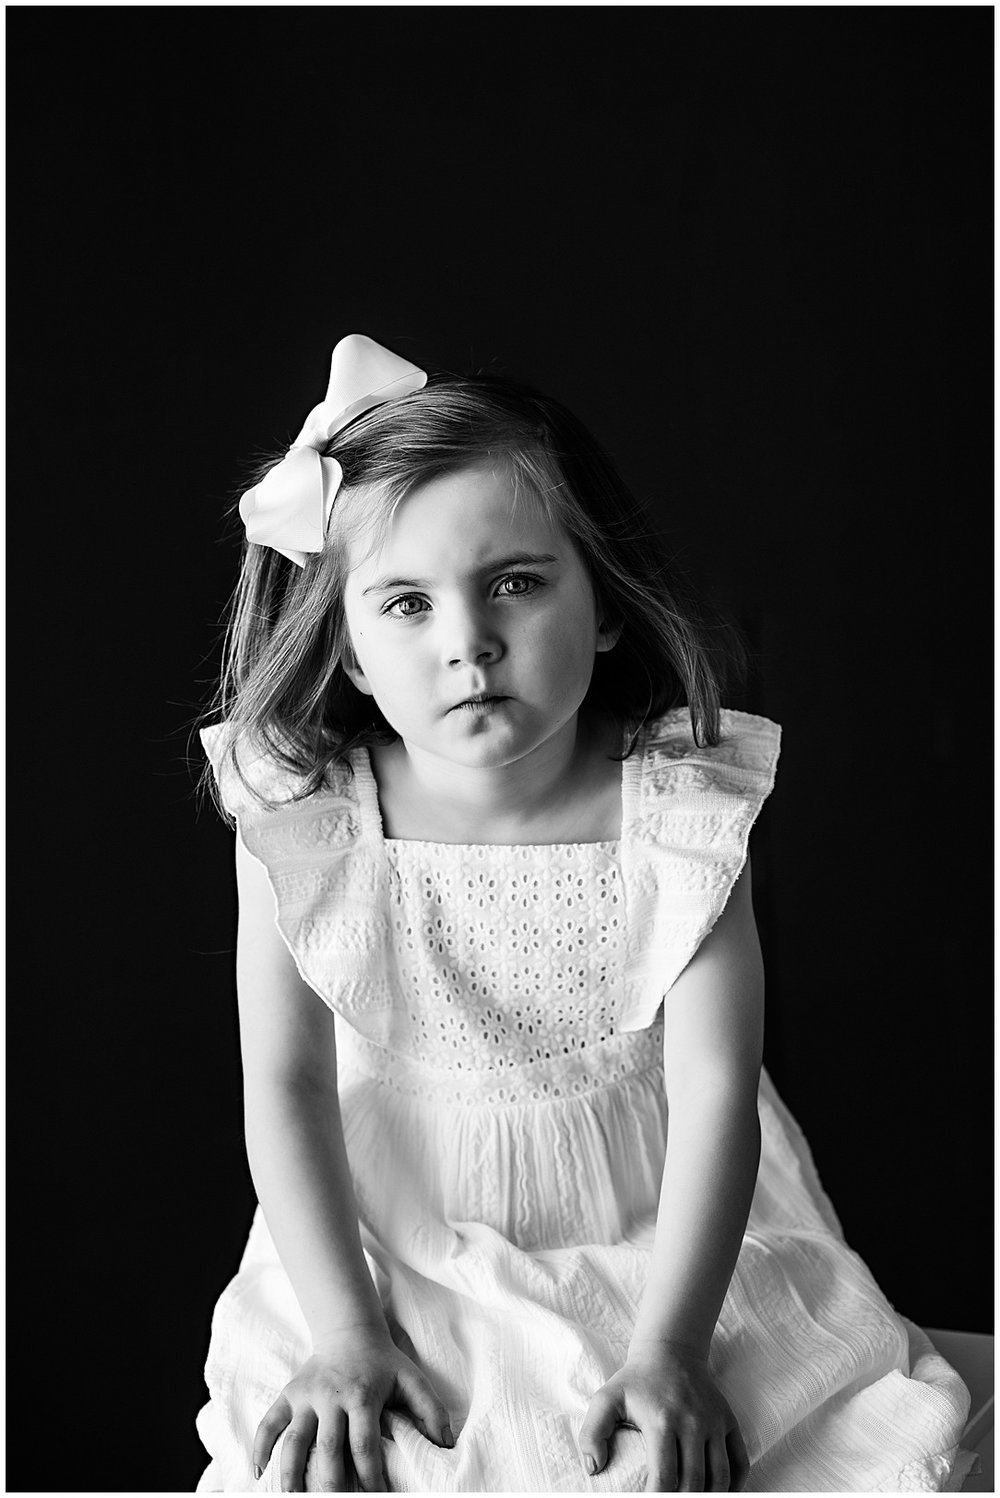 Tessa_marie_photography_atlanta_childrens_fine_art_black_and_white_photography_family_photographer_0009.jpg